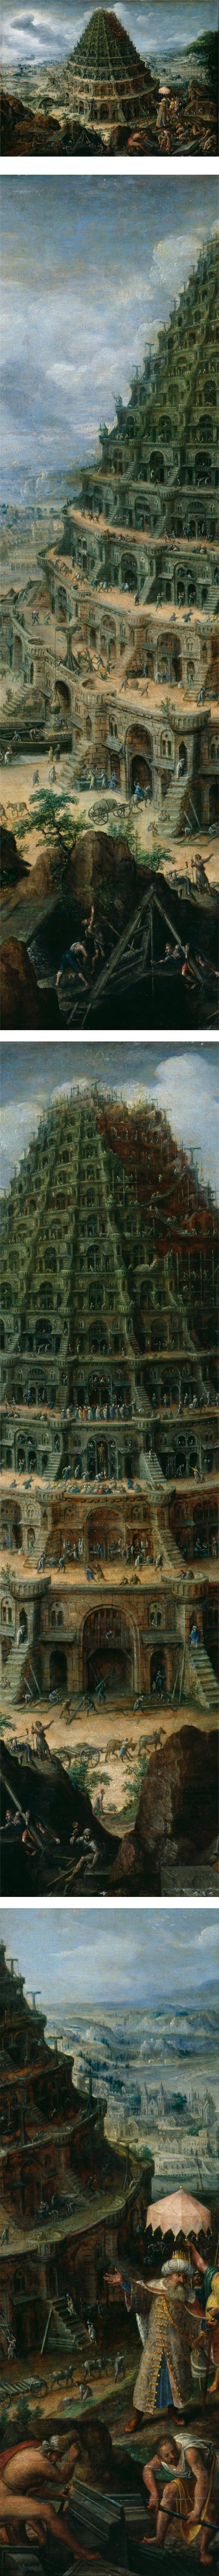 The Tower of Babel, Marten van Valckenborch the Elder